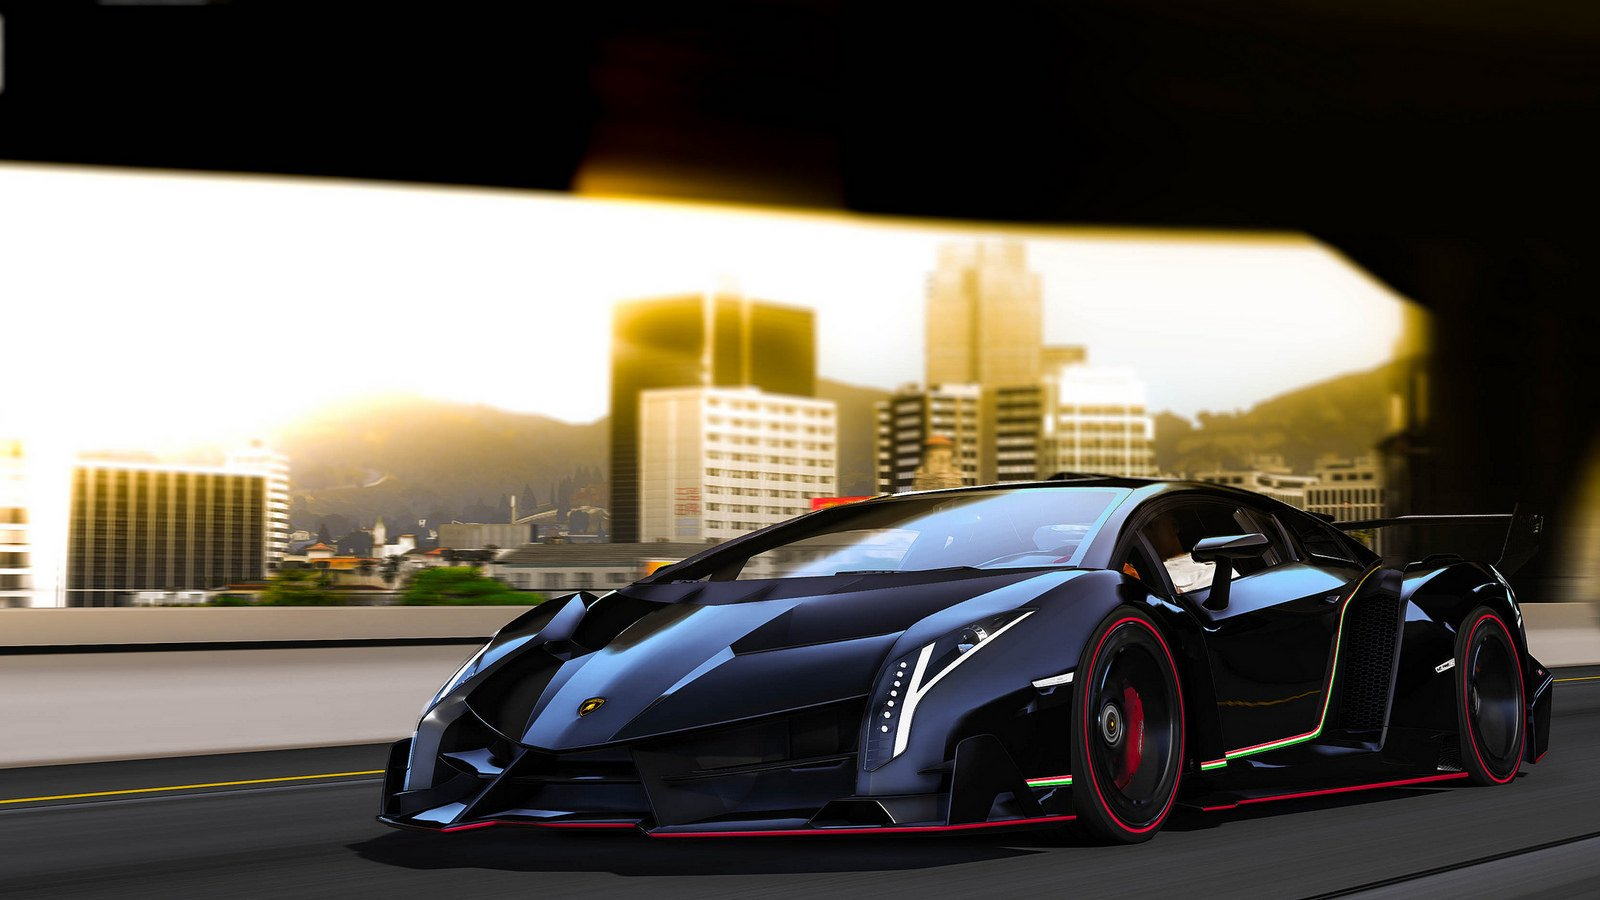 Lamborghini Veneno LP750-4 [Add-On/OIV] - GTA5-Mods.com